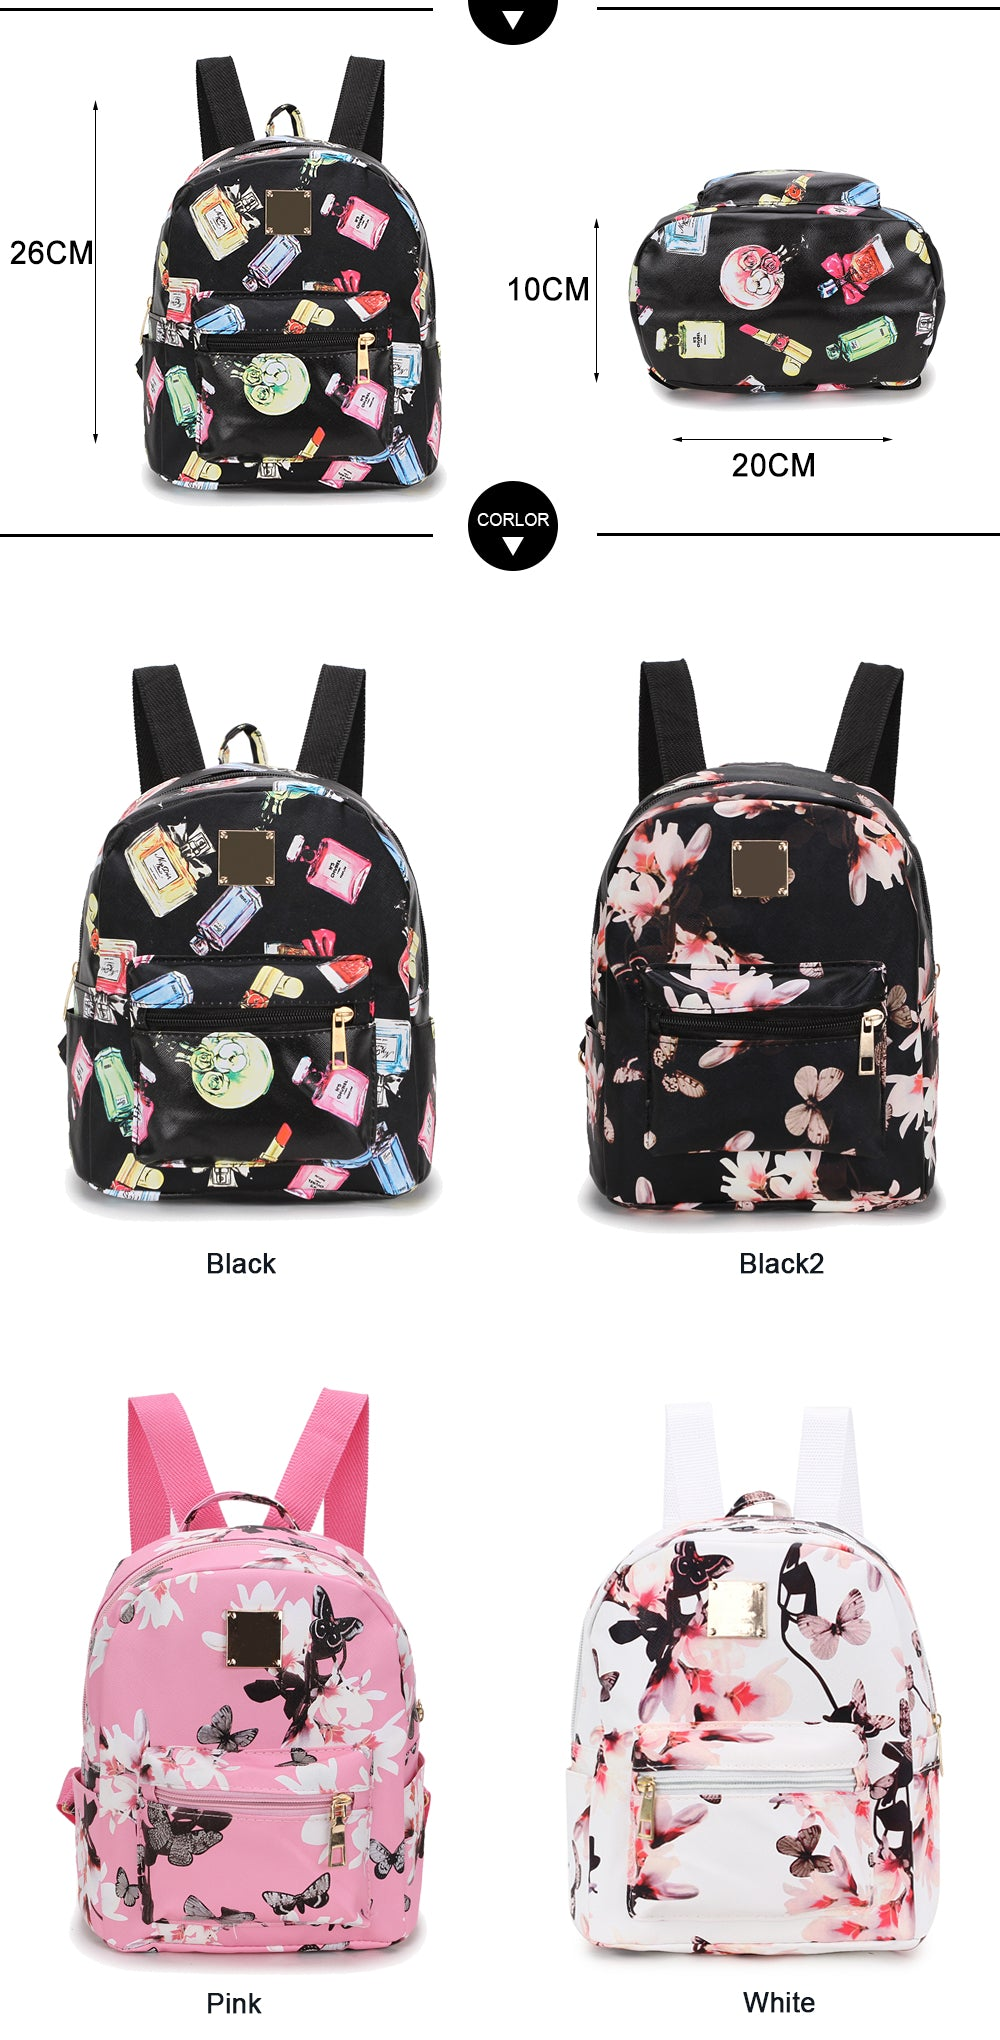 Mochila™ – High Fashion Bagpack